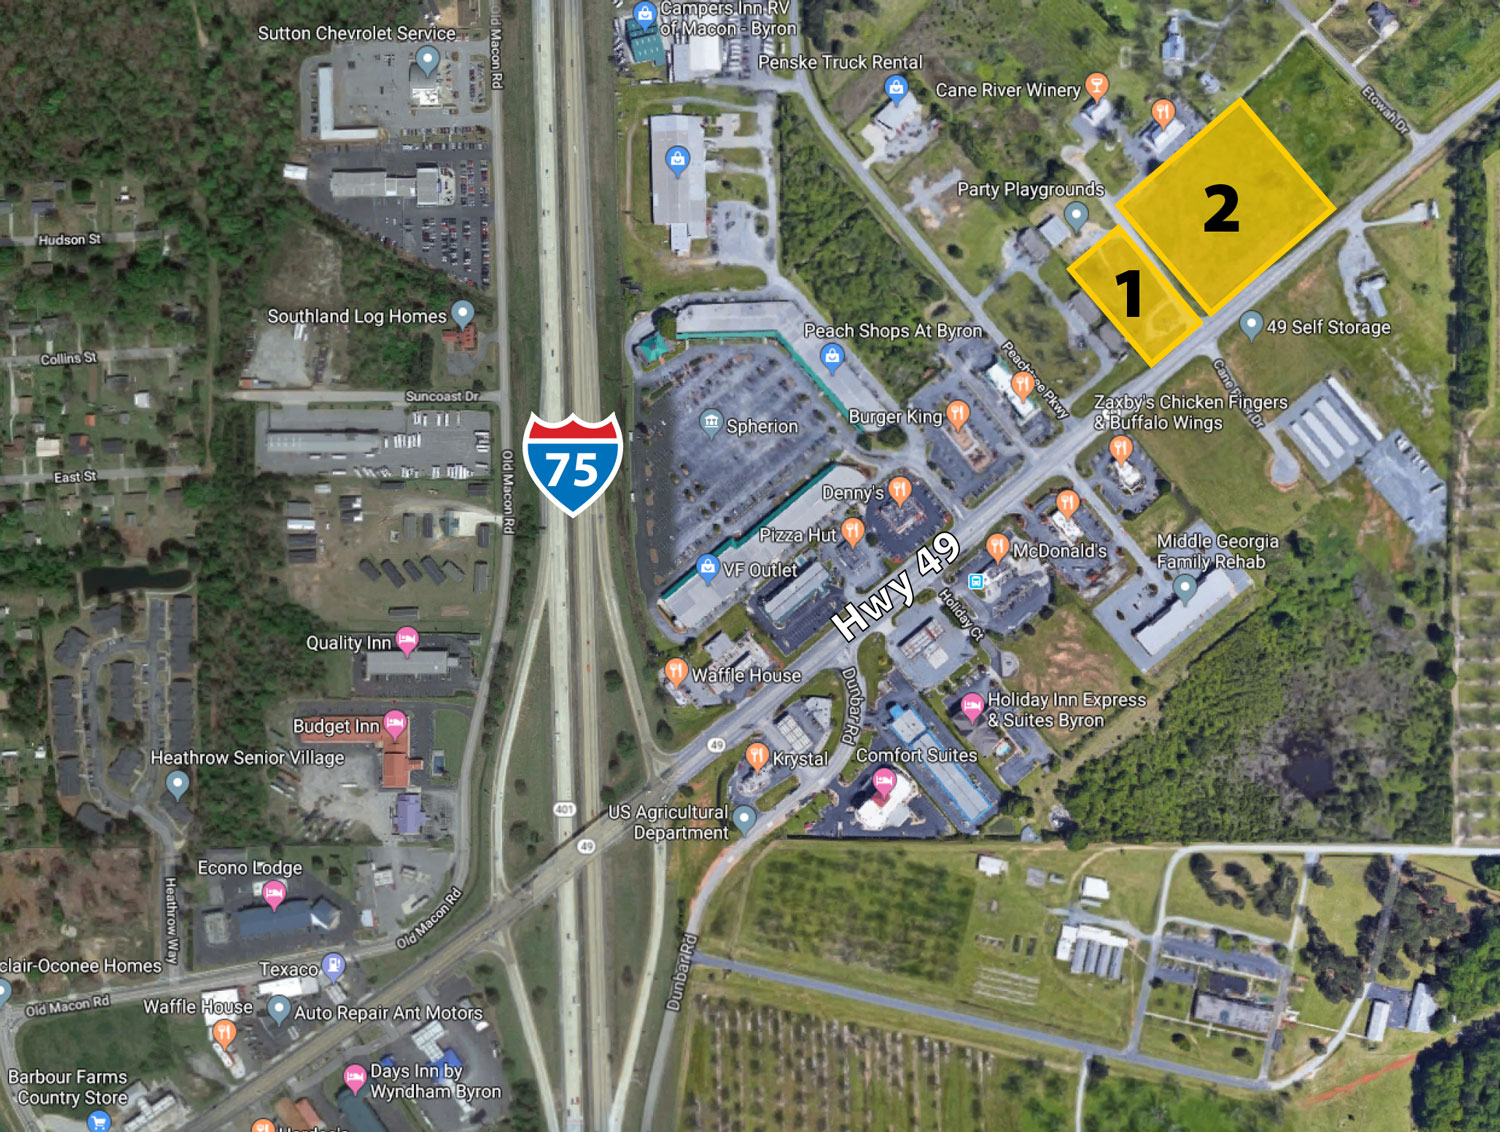 Land for Sale: Hwy 49 at Cane River Dr, Byron, GA – Thornton Realty